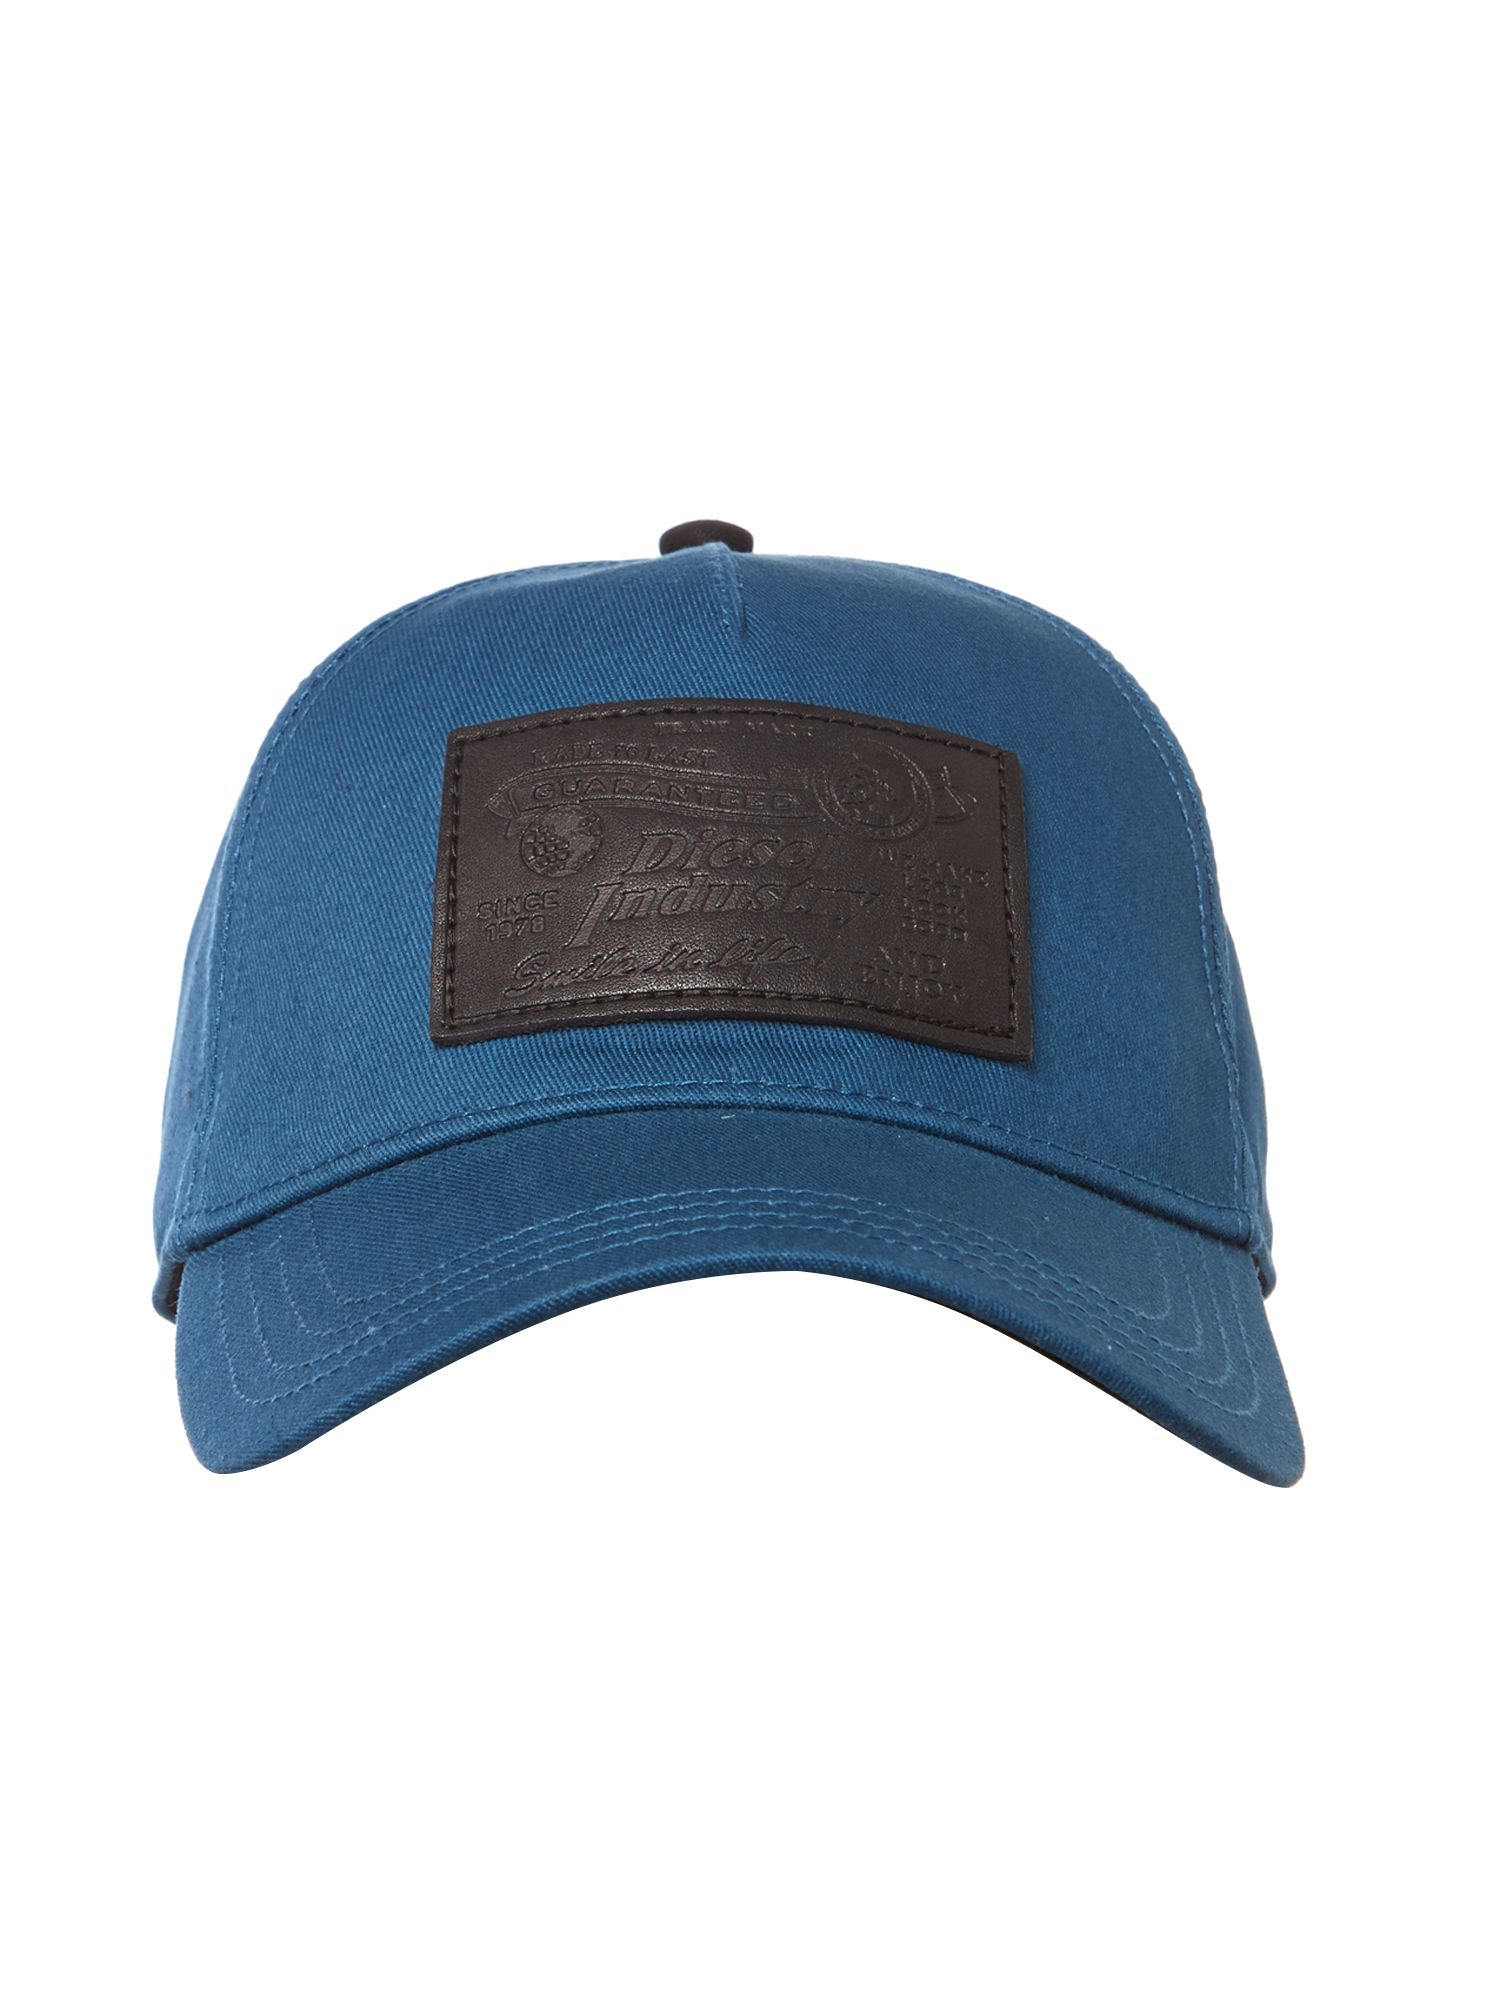 Leather logo chariel cap